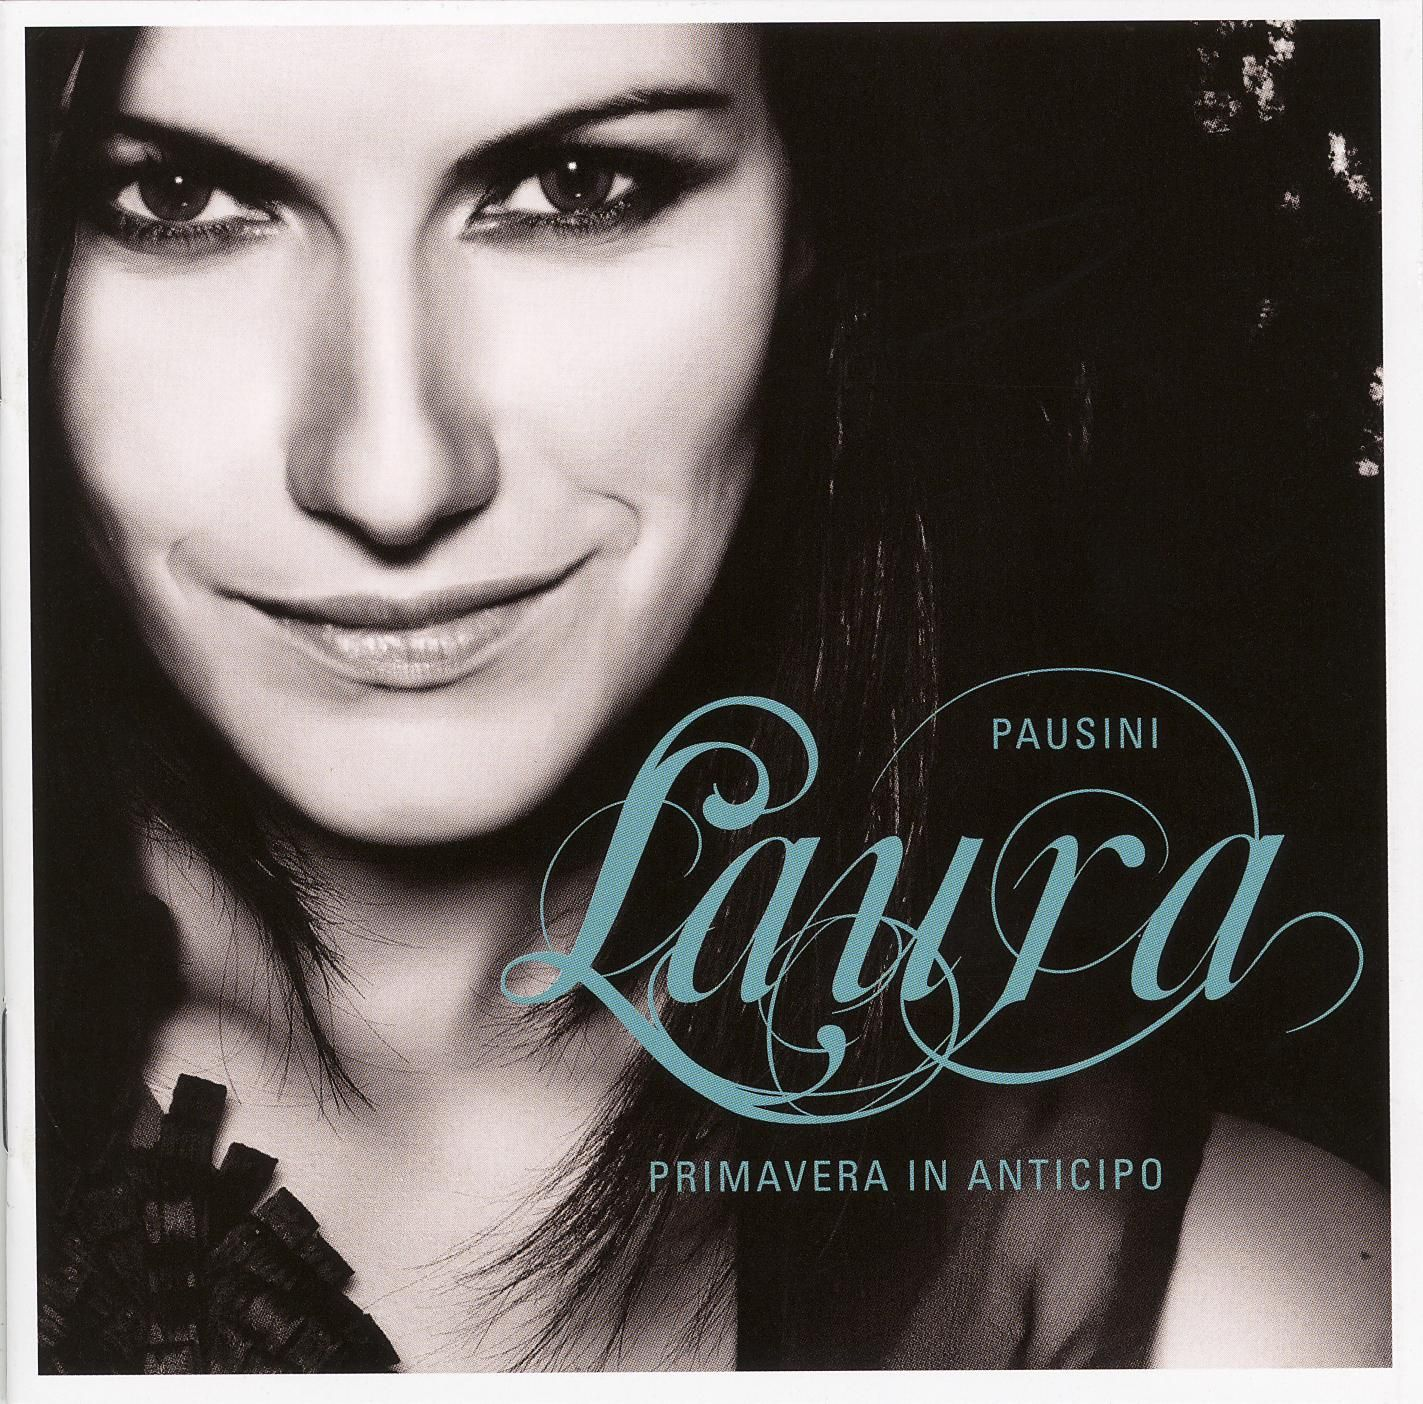 Laura Pausini - Primavera In Anticipo album cover